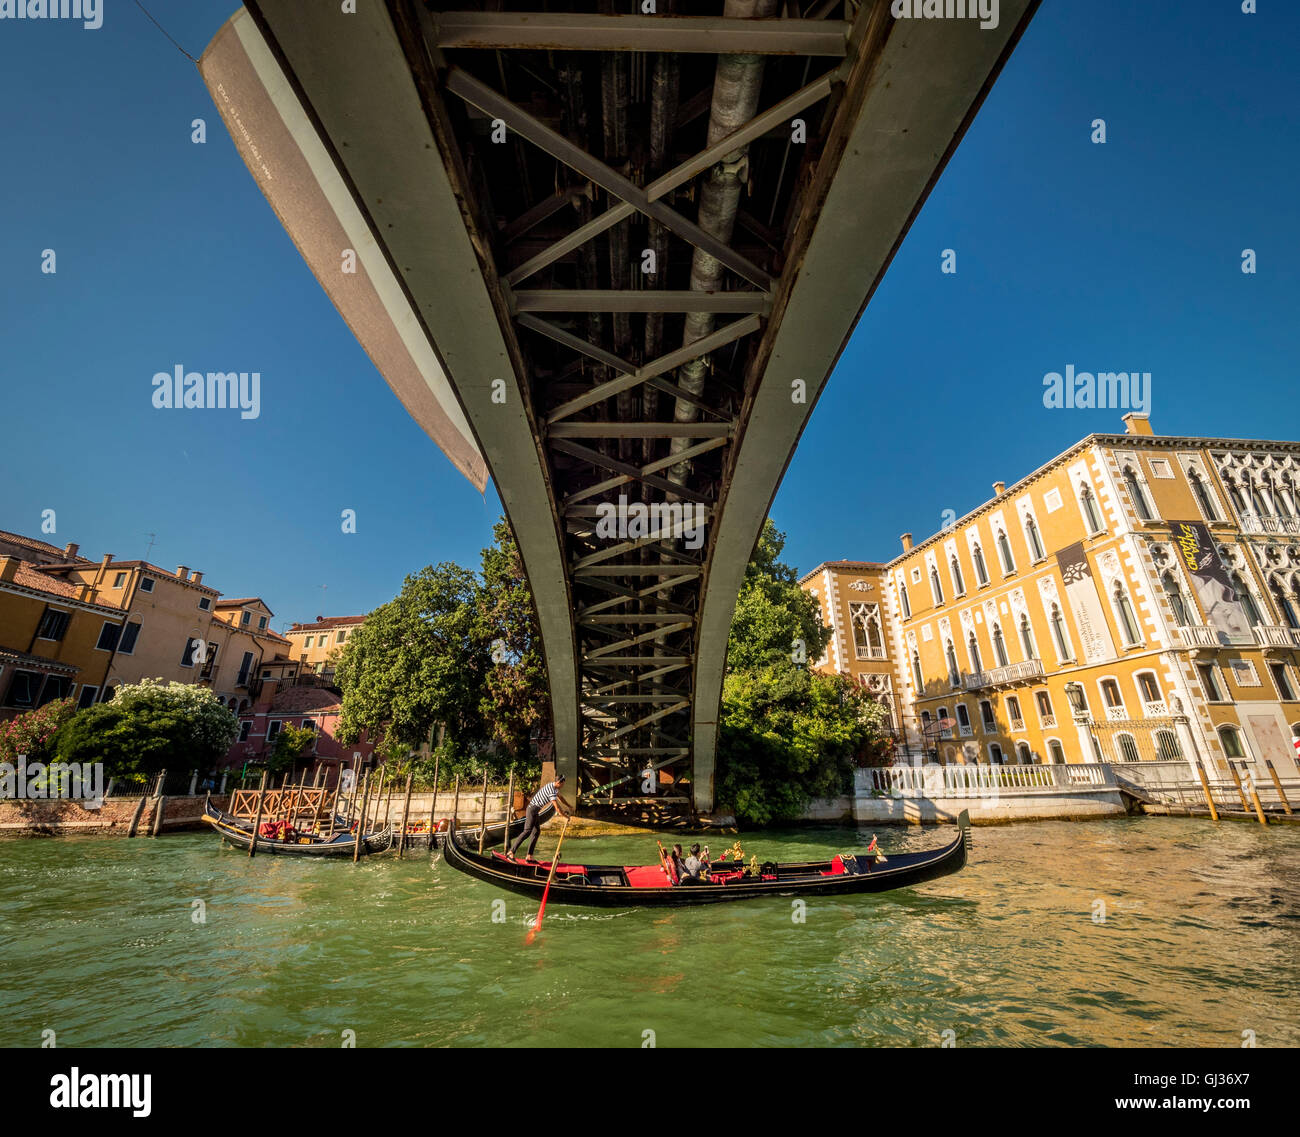 Gondola on the Grand Canal in Venice, Italy passing underneath the Accademia Bridge. Stock Photo